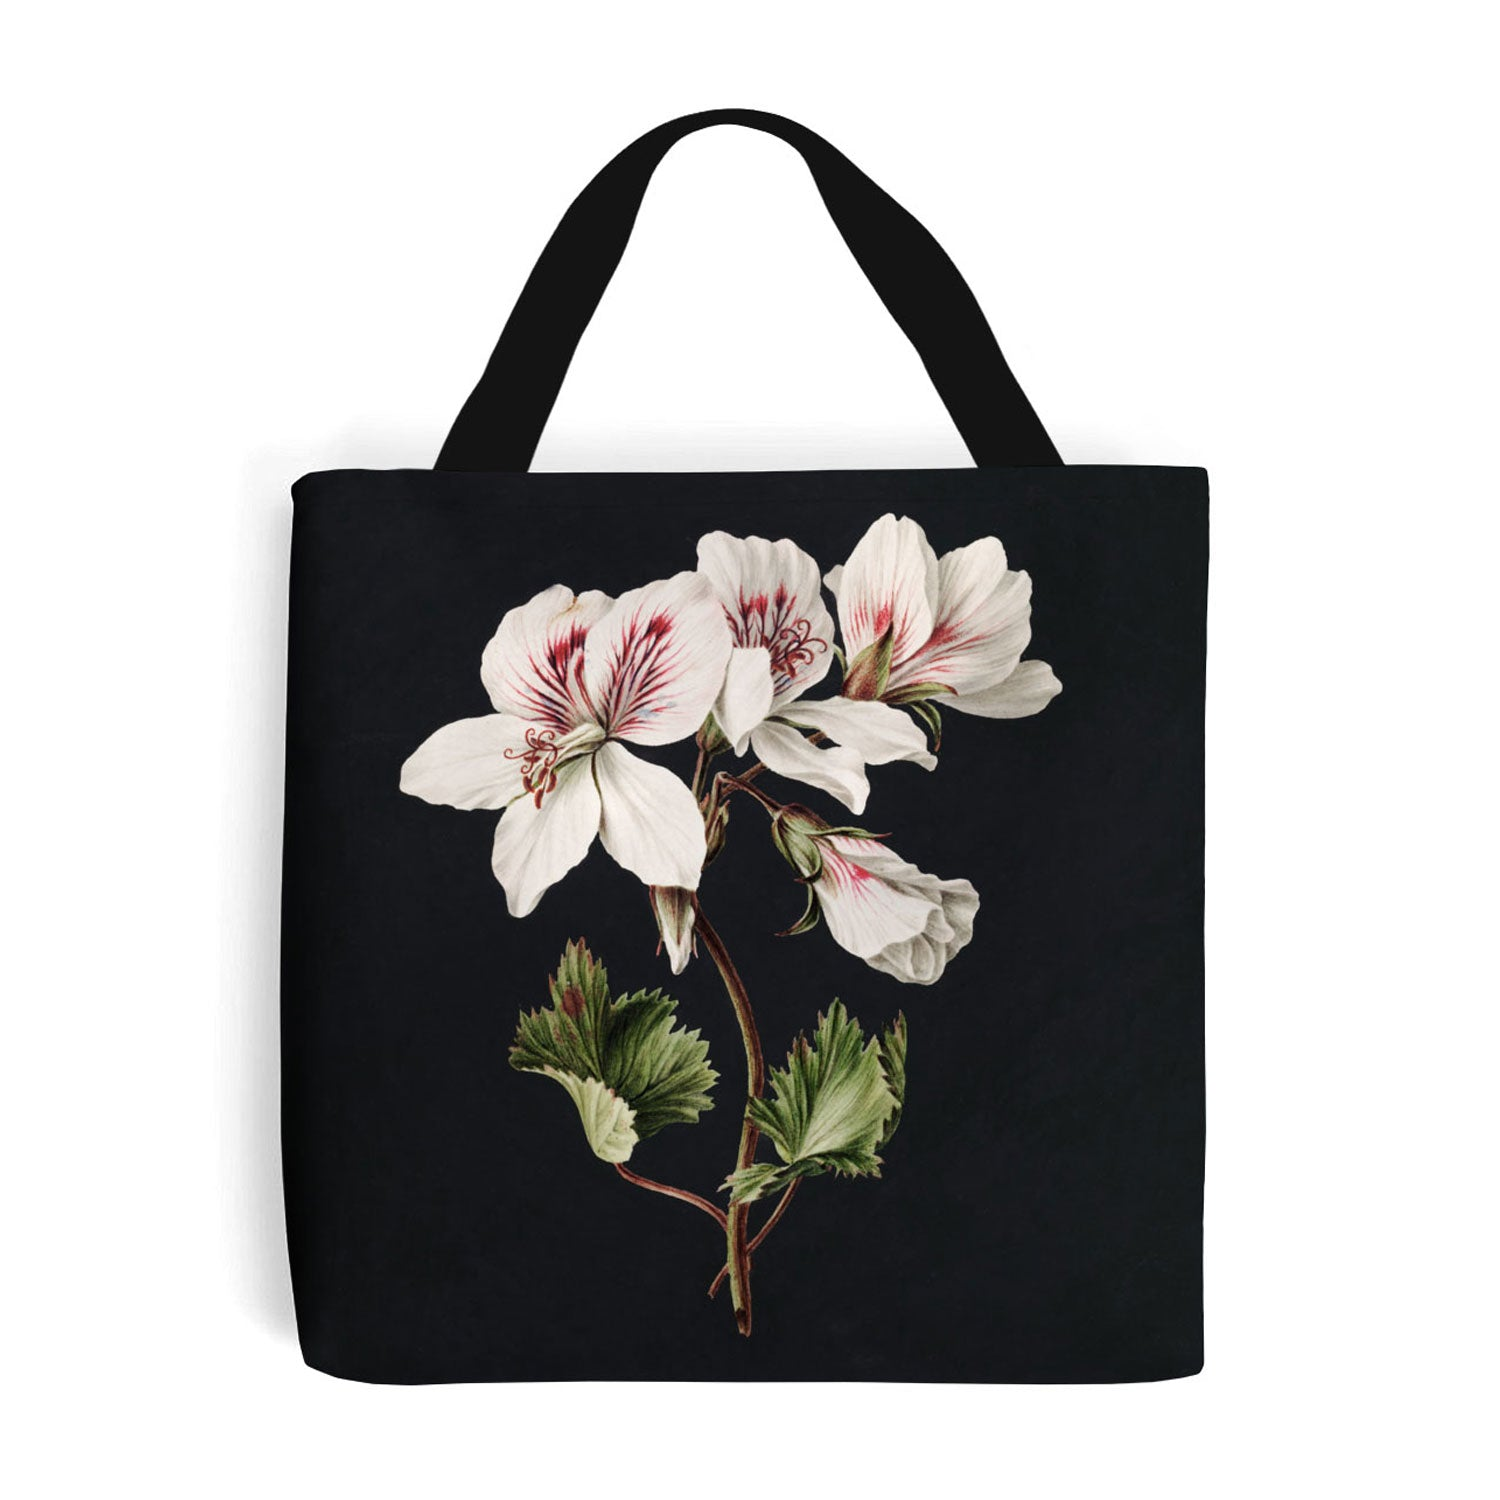 shopping bag with pelargonium flower design on the side